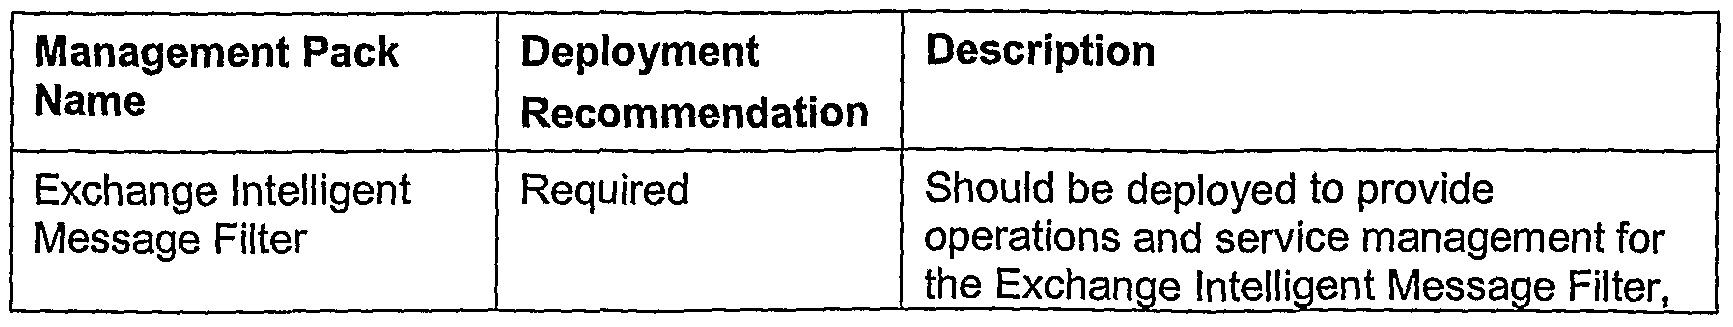 WO2007040858A1 - Assessment and/or deployment of computer